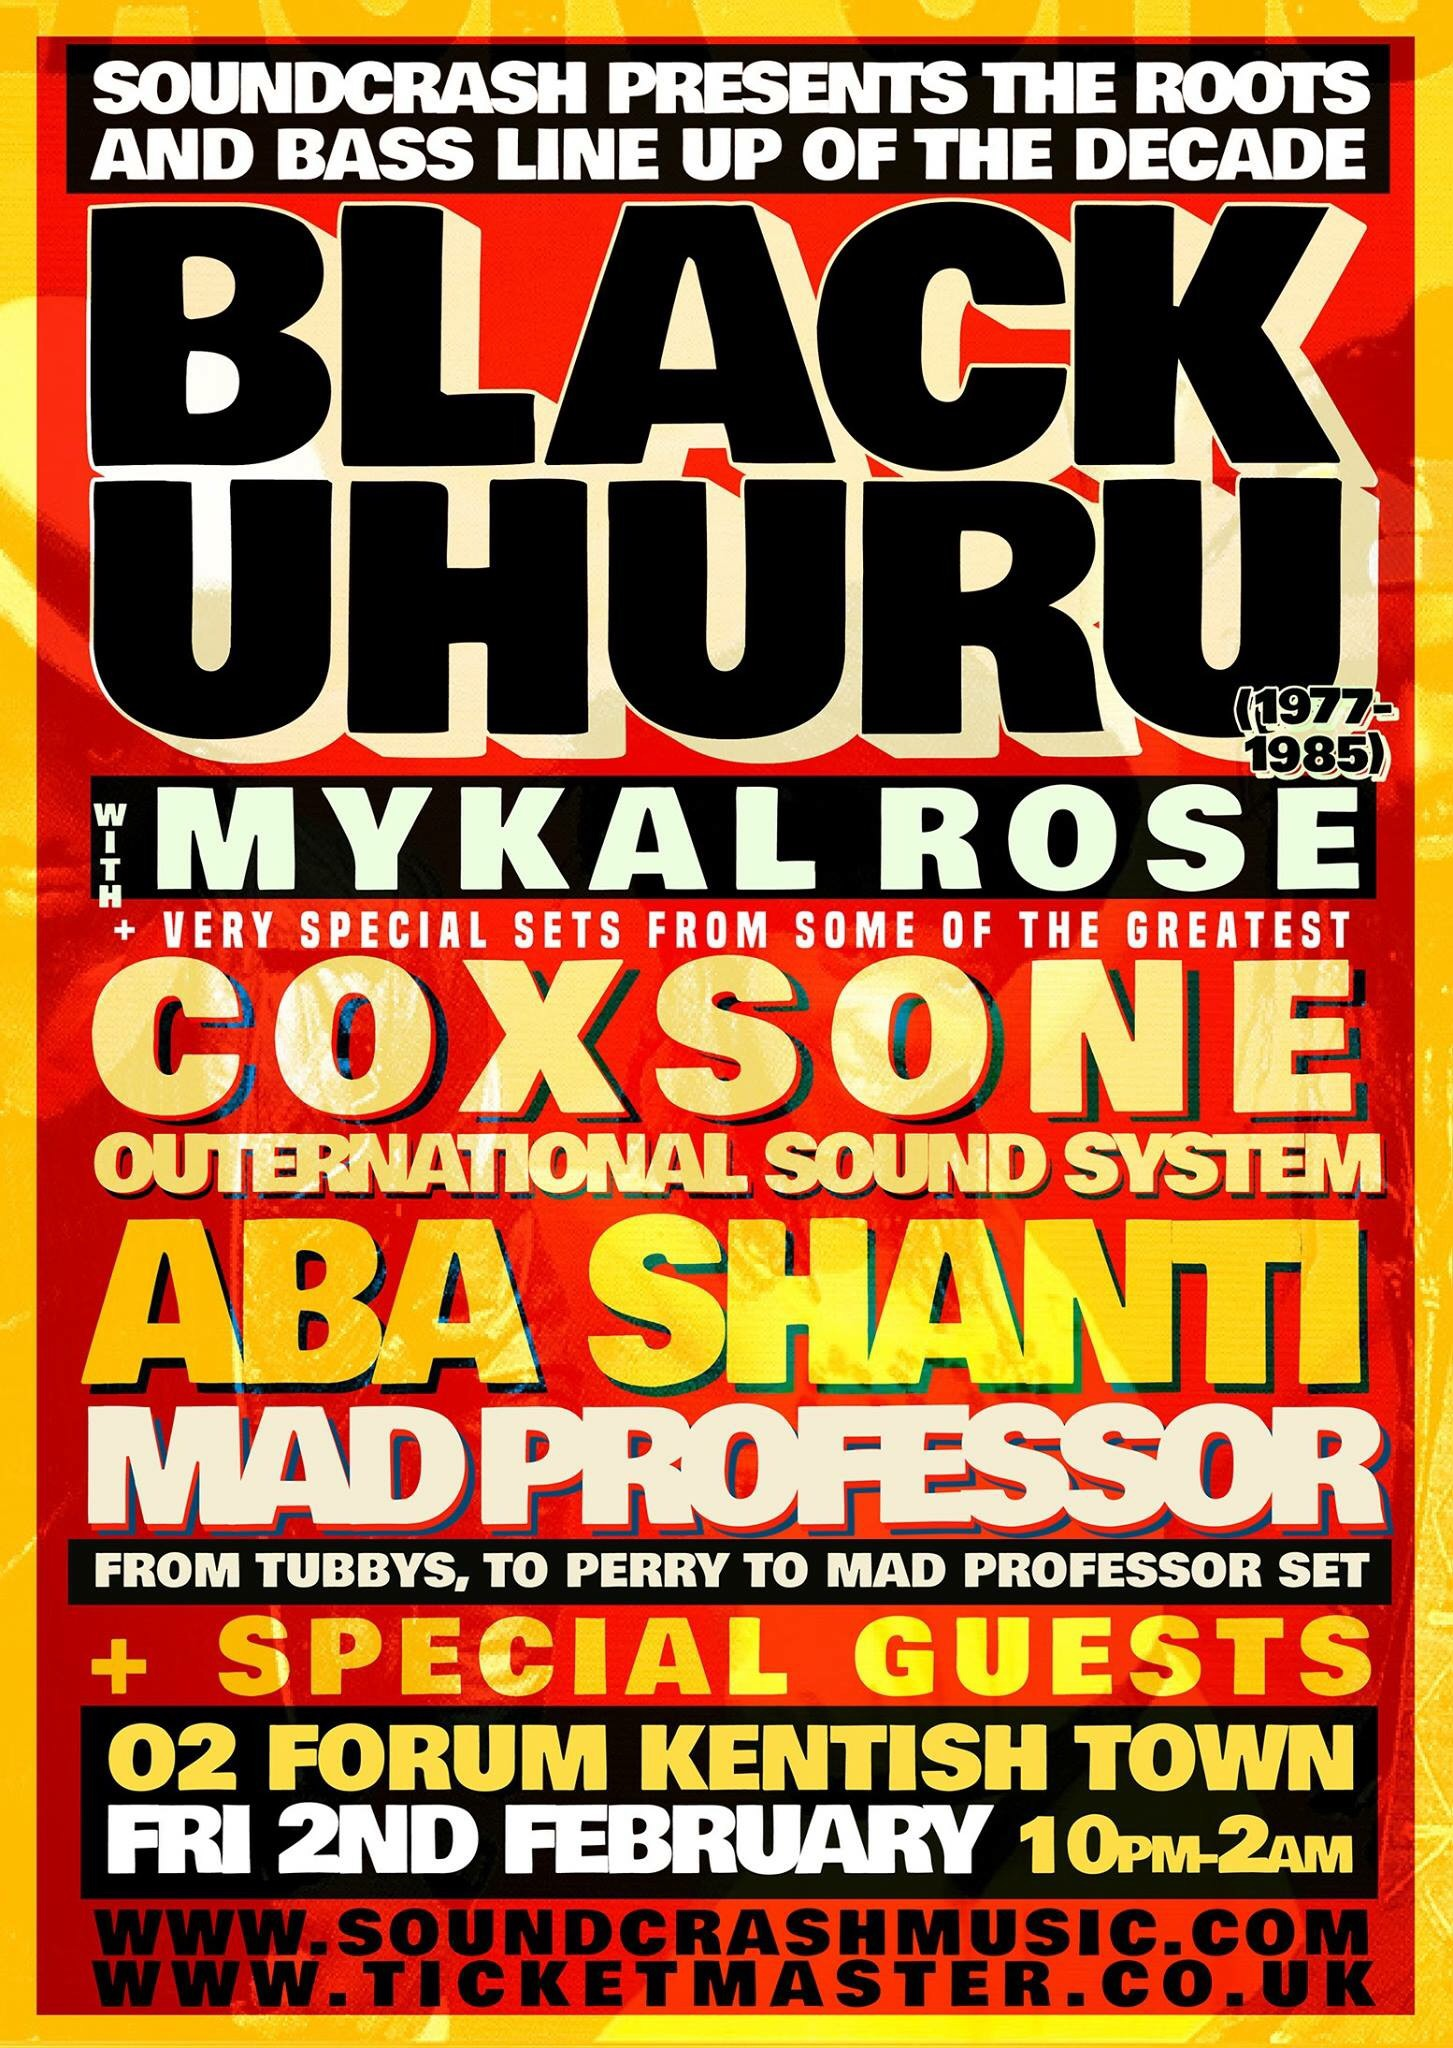 Black Uhuru performed by Mykal Rose + More